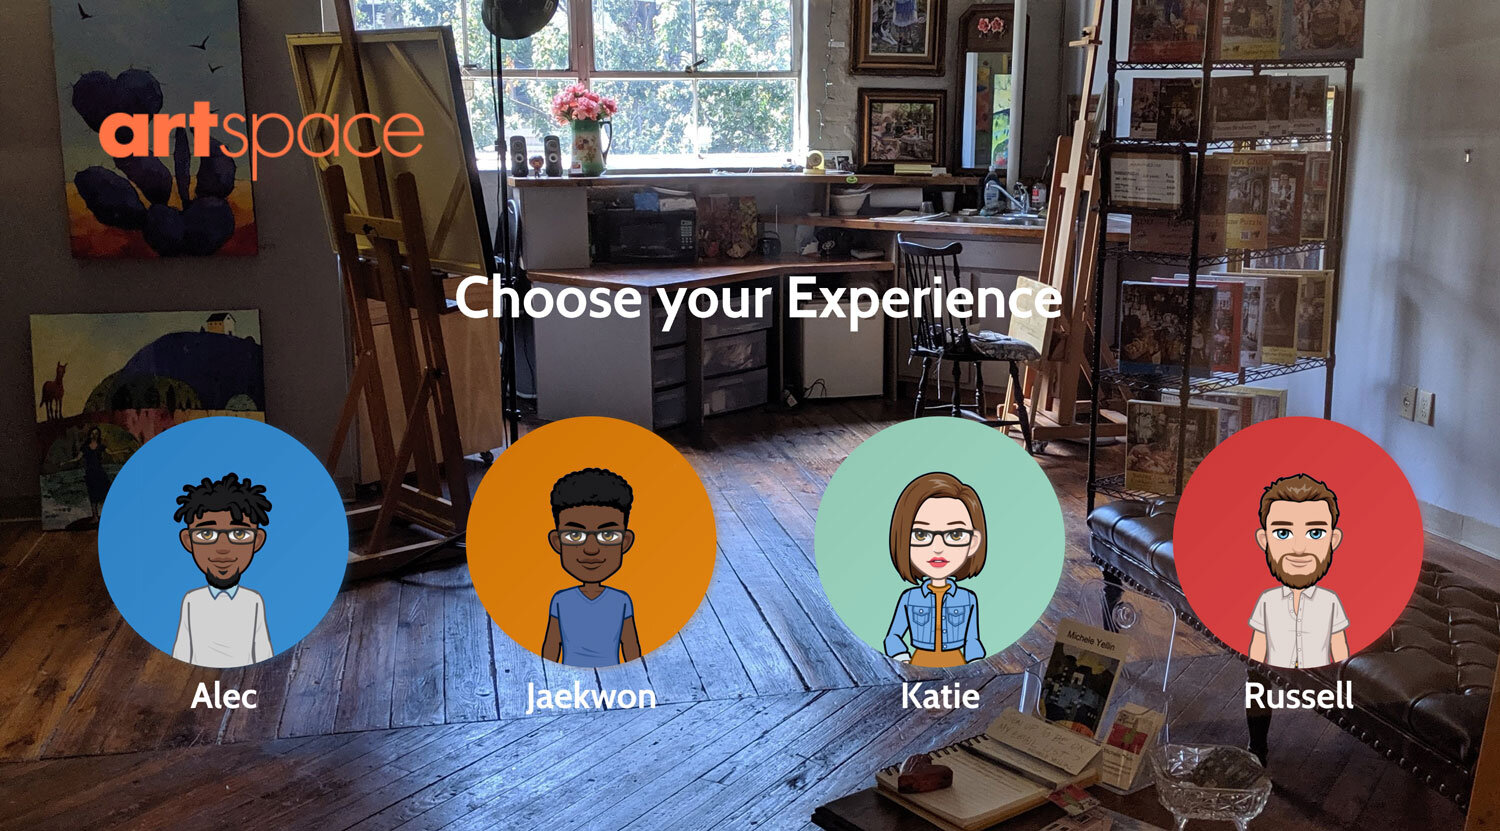 """Design the Experience as an artifact: Portal landing screenshot for """"Choose your Experience"""""""